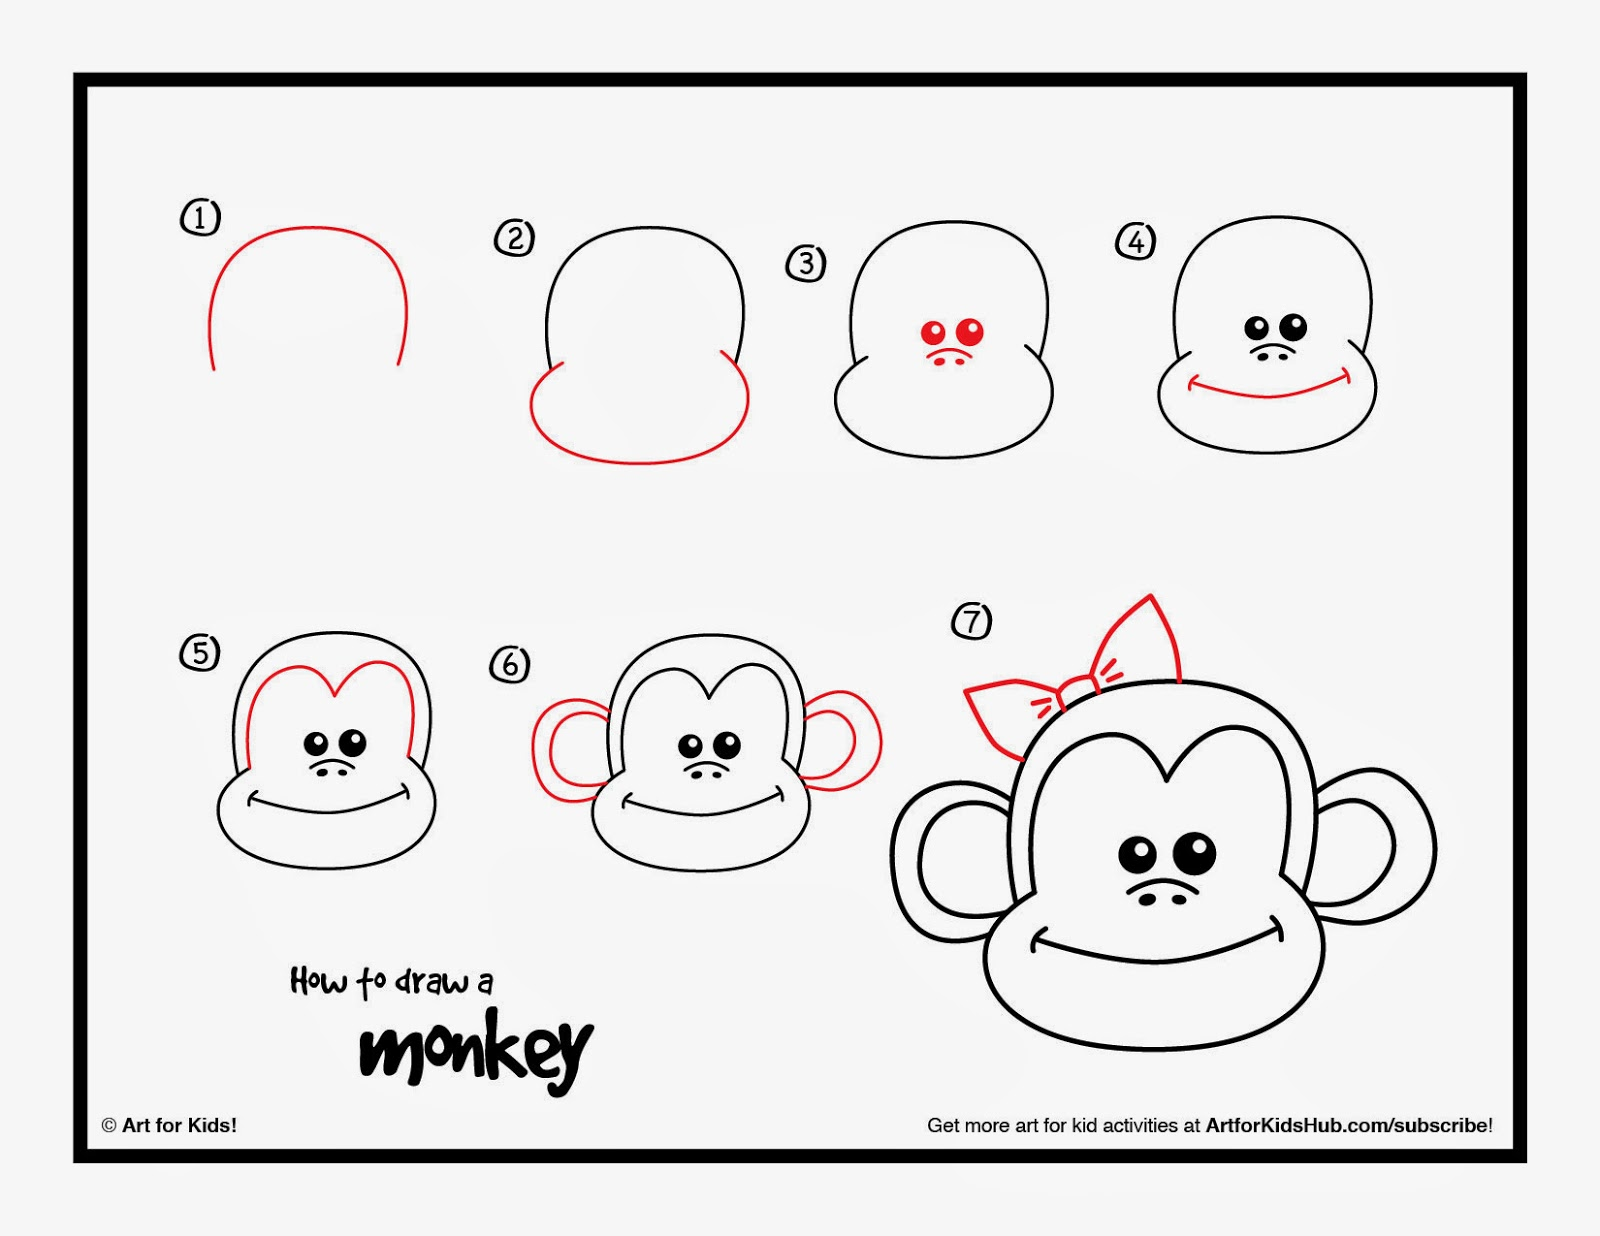 http://artforkidshub.com/how-to-draw-a-monkey/